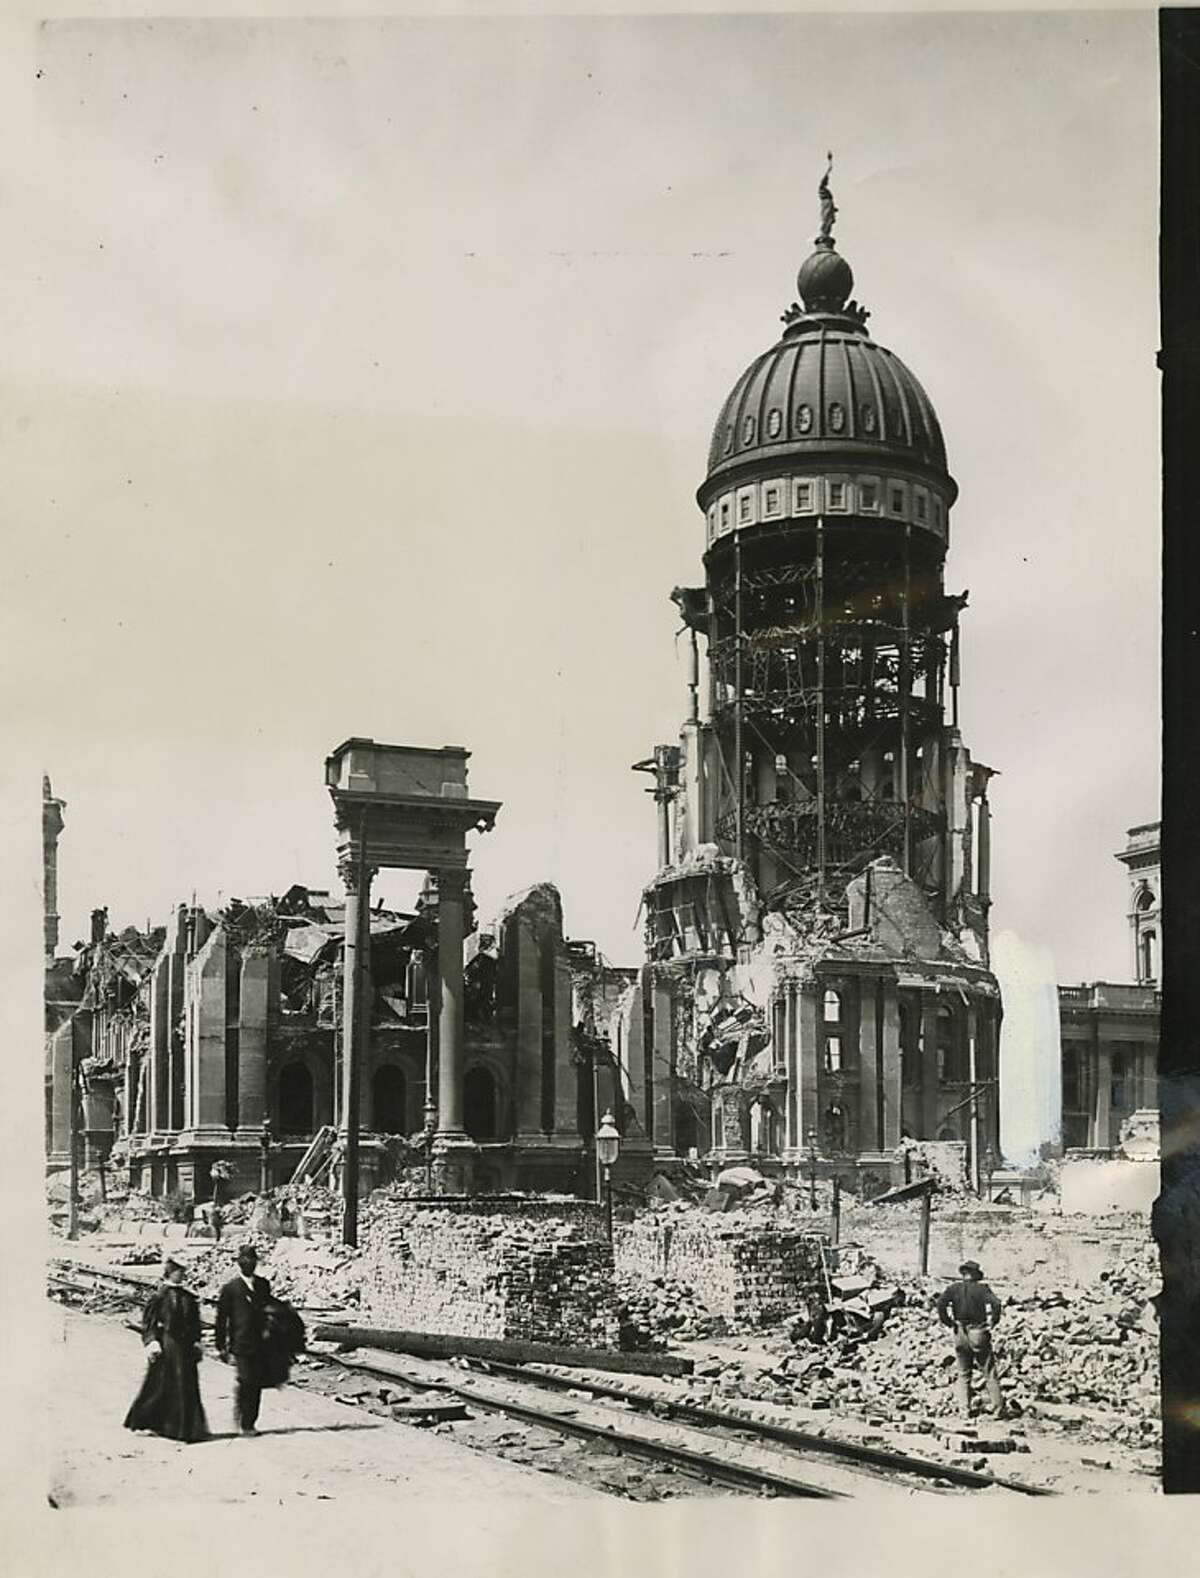 San Francisco City Hall in the aftermath of the 1906 earthquake and fire